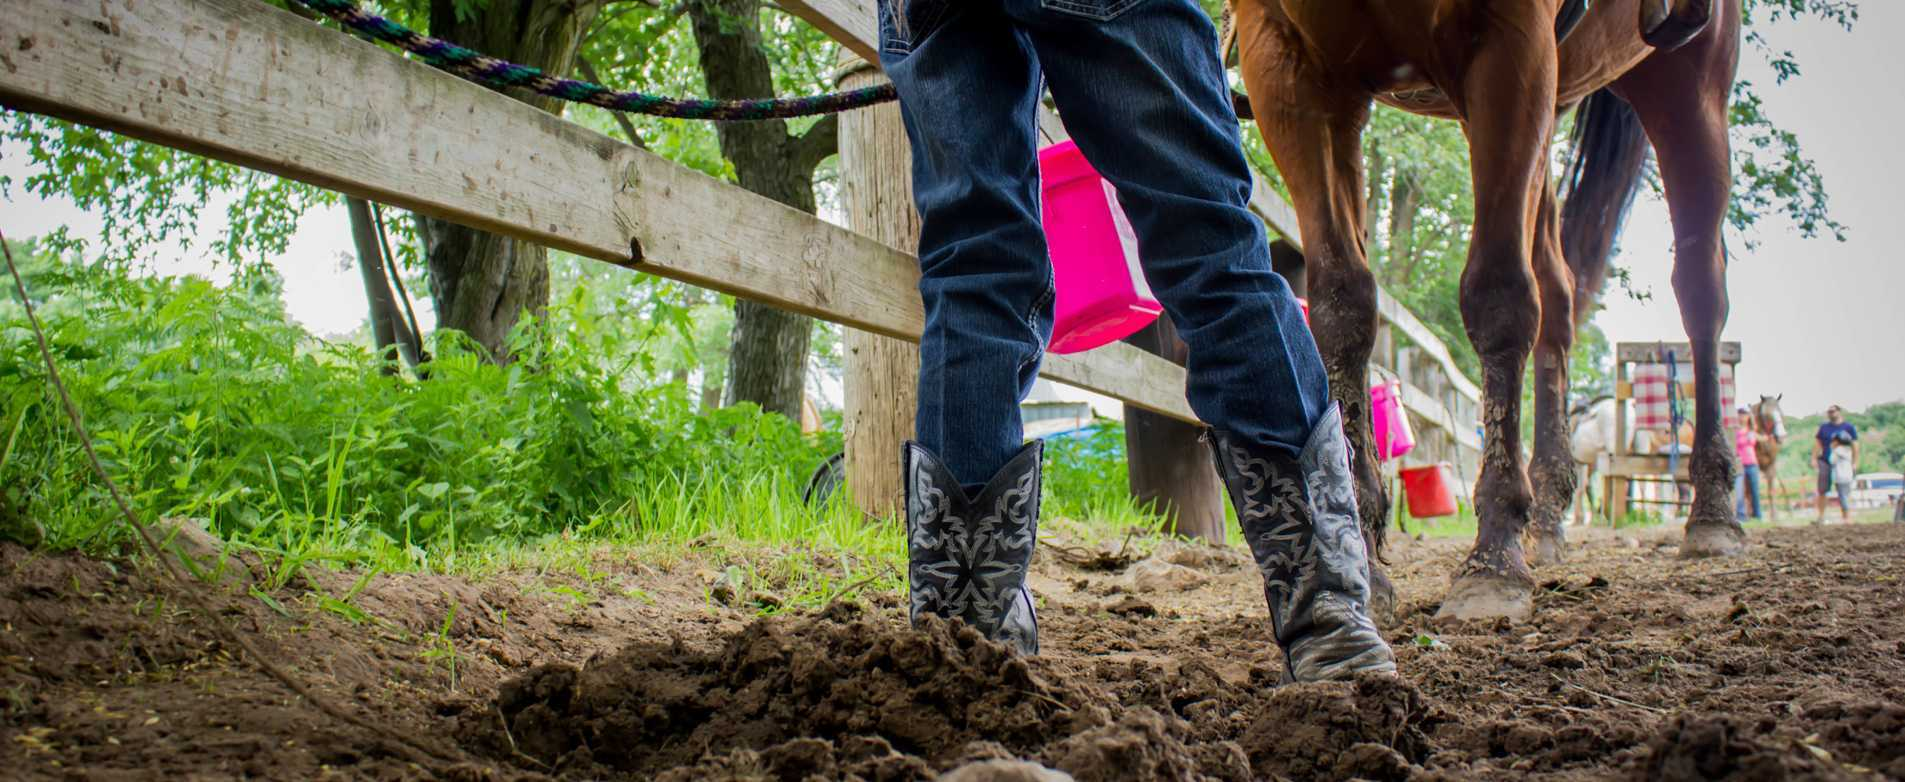 Cowboy Boots in Dirt at Red Ridge Ranch Riding Stable